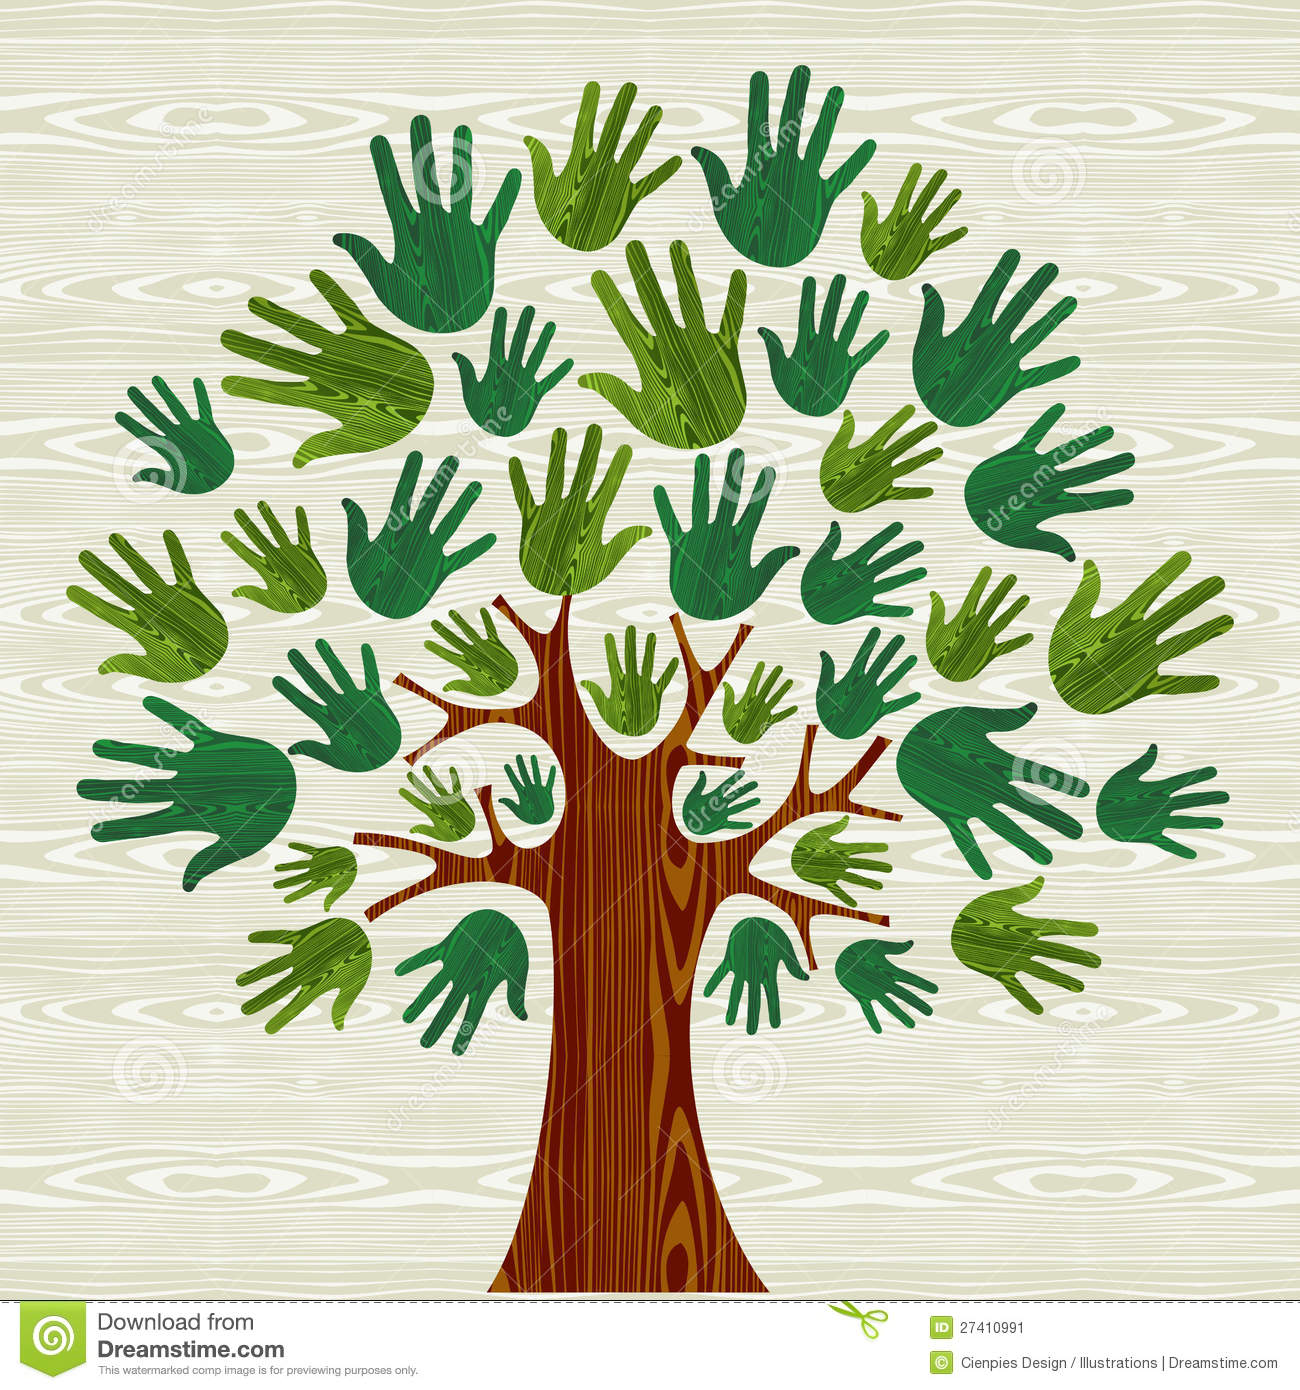 Eco Friendly Tree Hands Stock Vector. Illustration Of